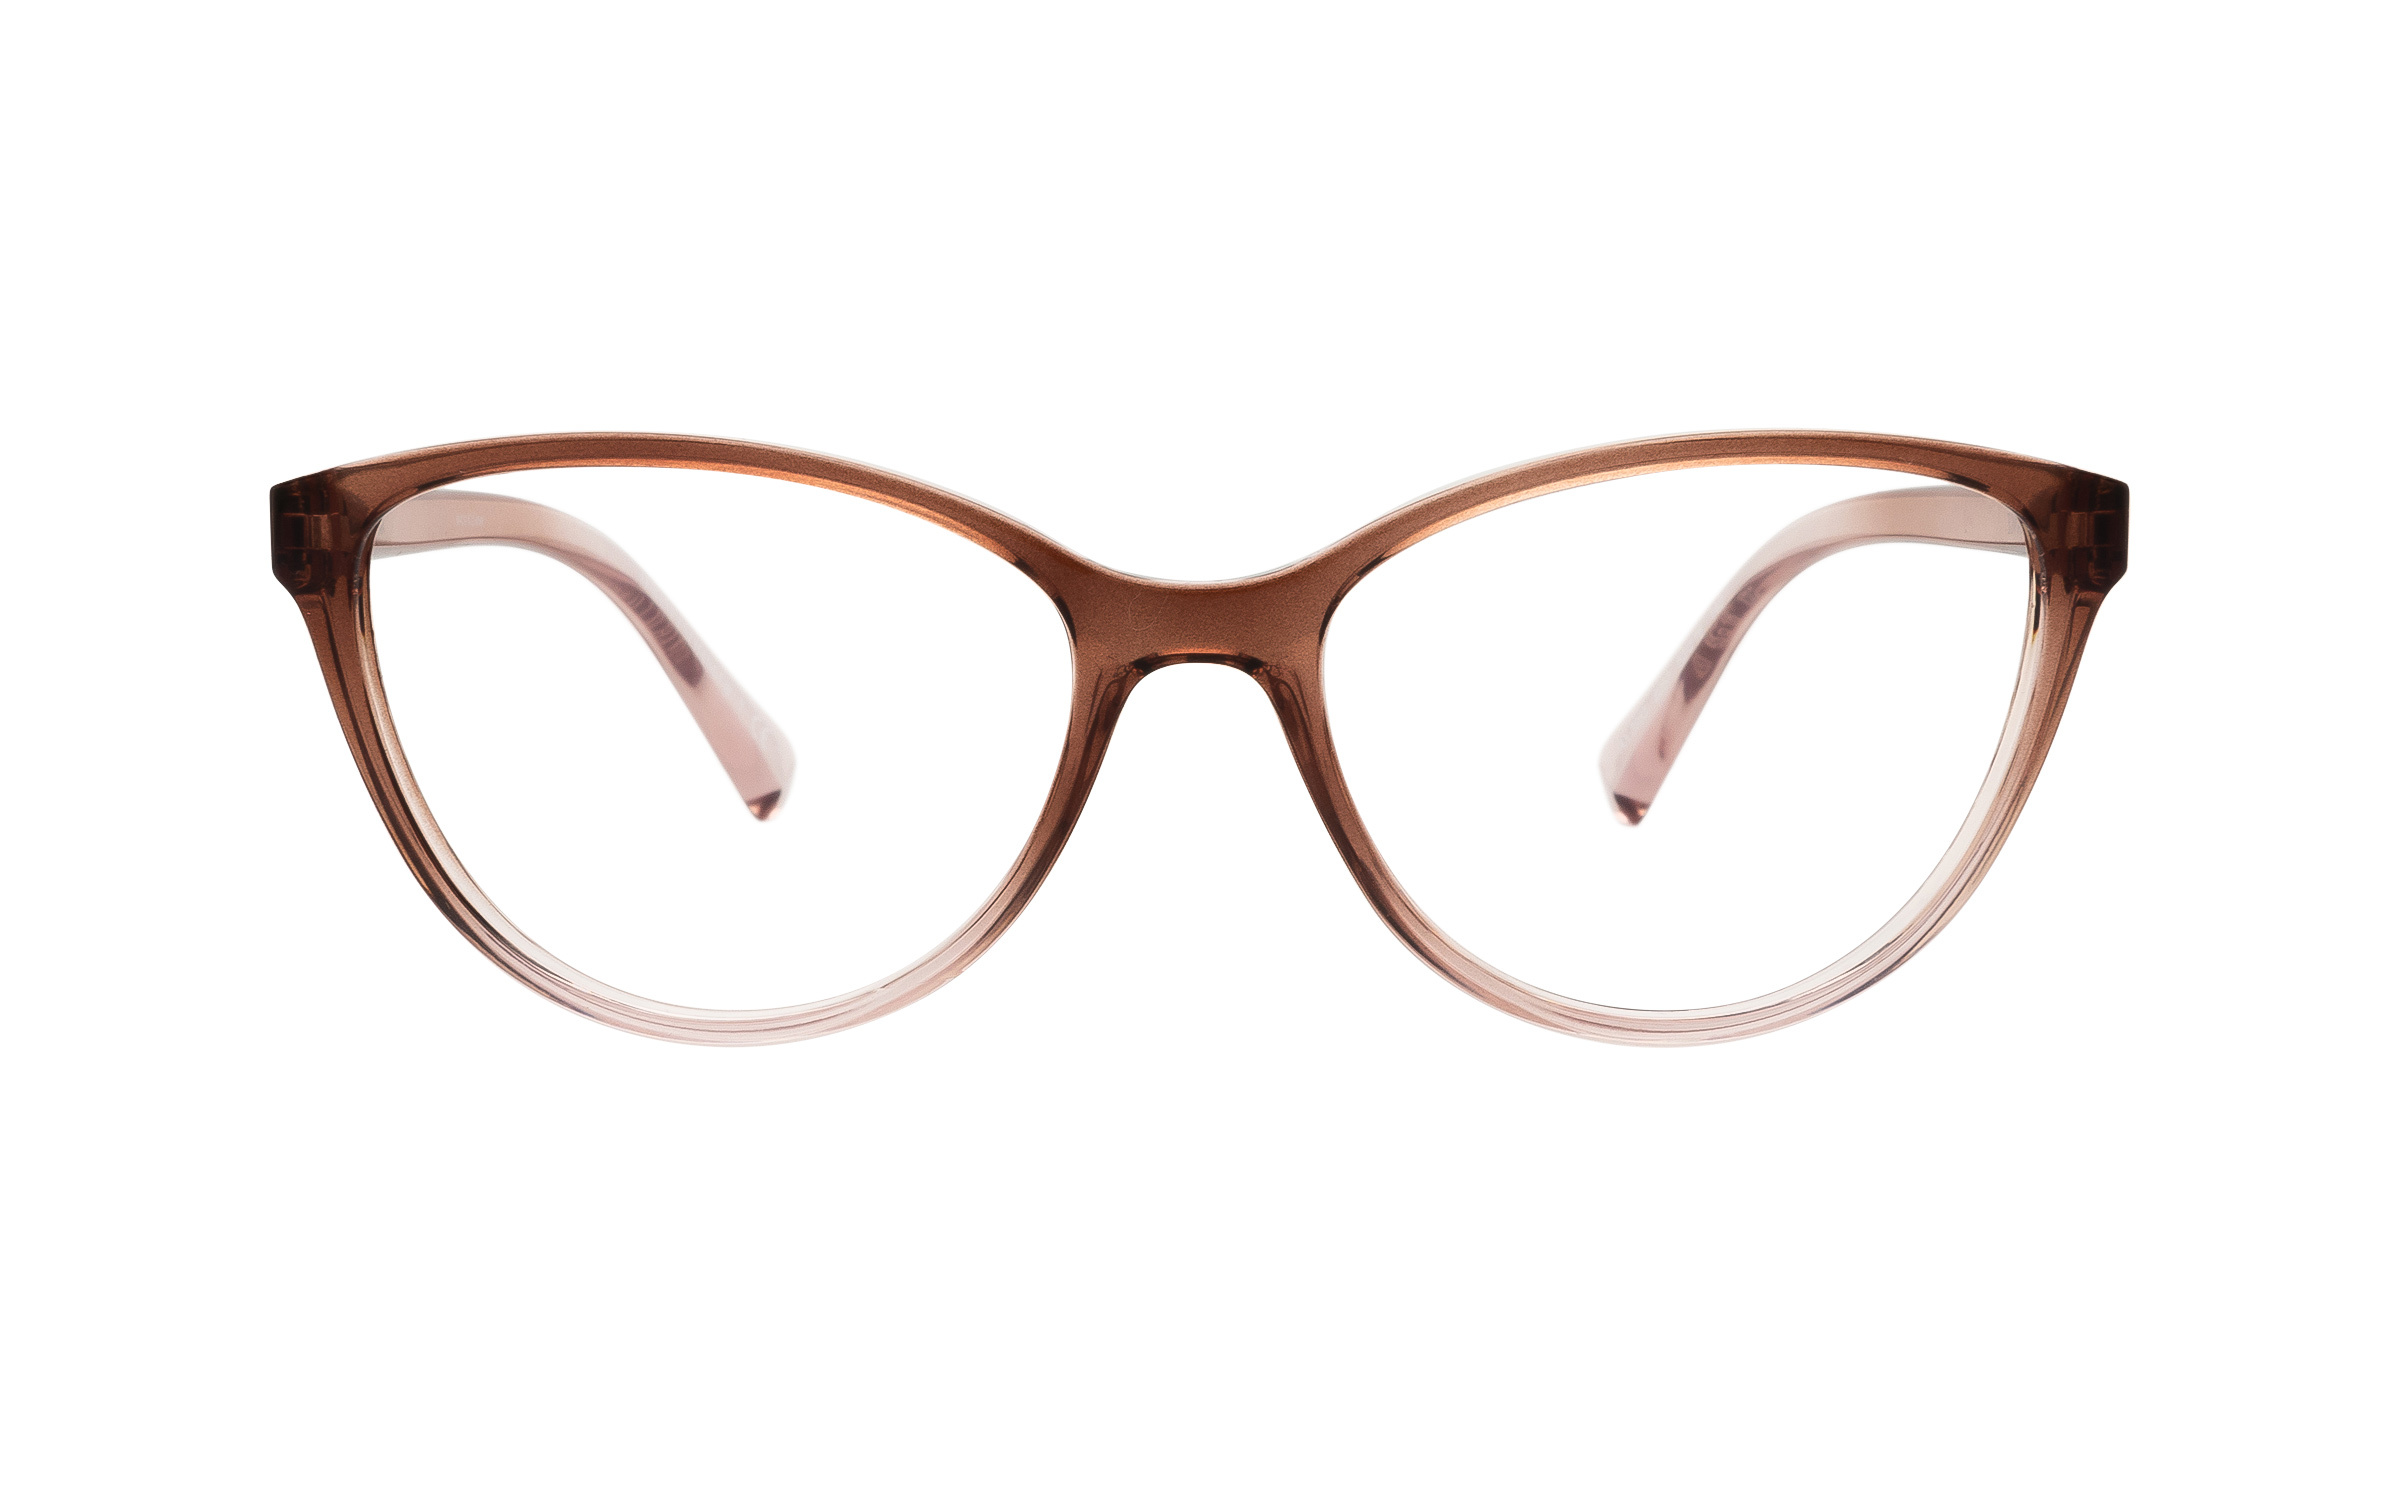 http://www.coastal.com/ - Armani Exchange AX3053 8257 (53) Eyeglasses and Frame in Tundra Rose Pink – Online Coastal